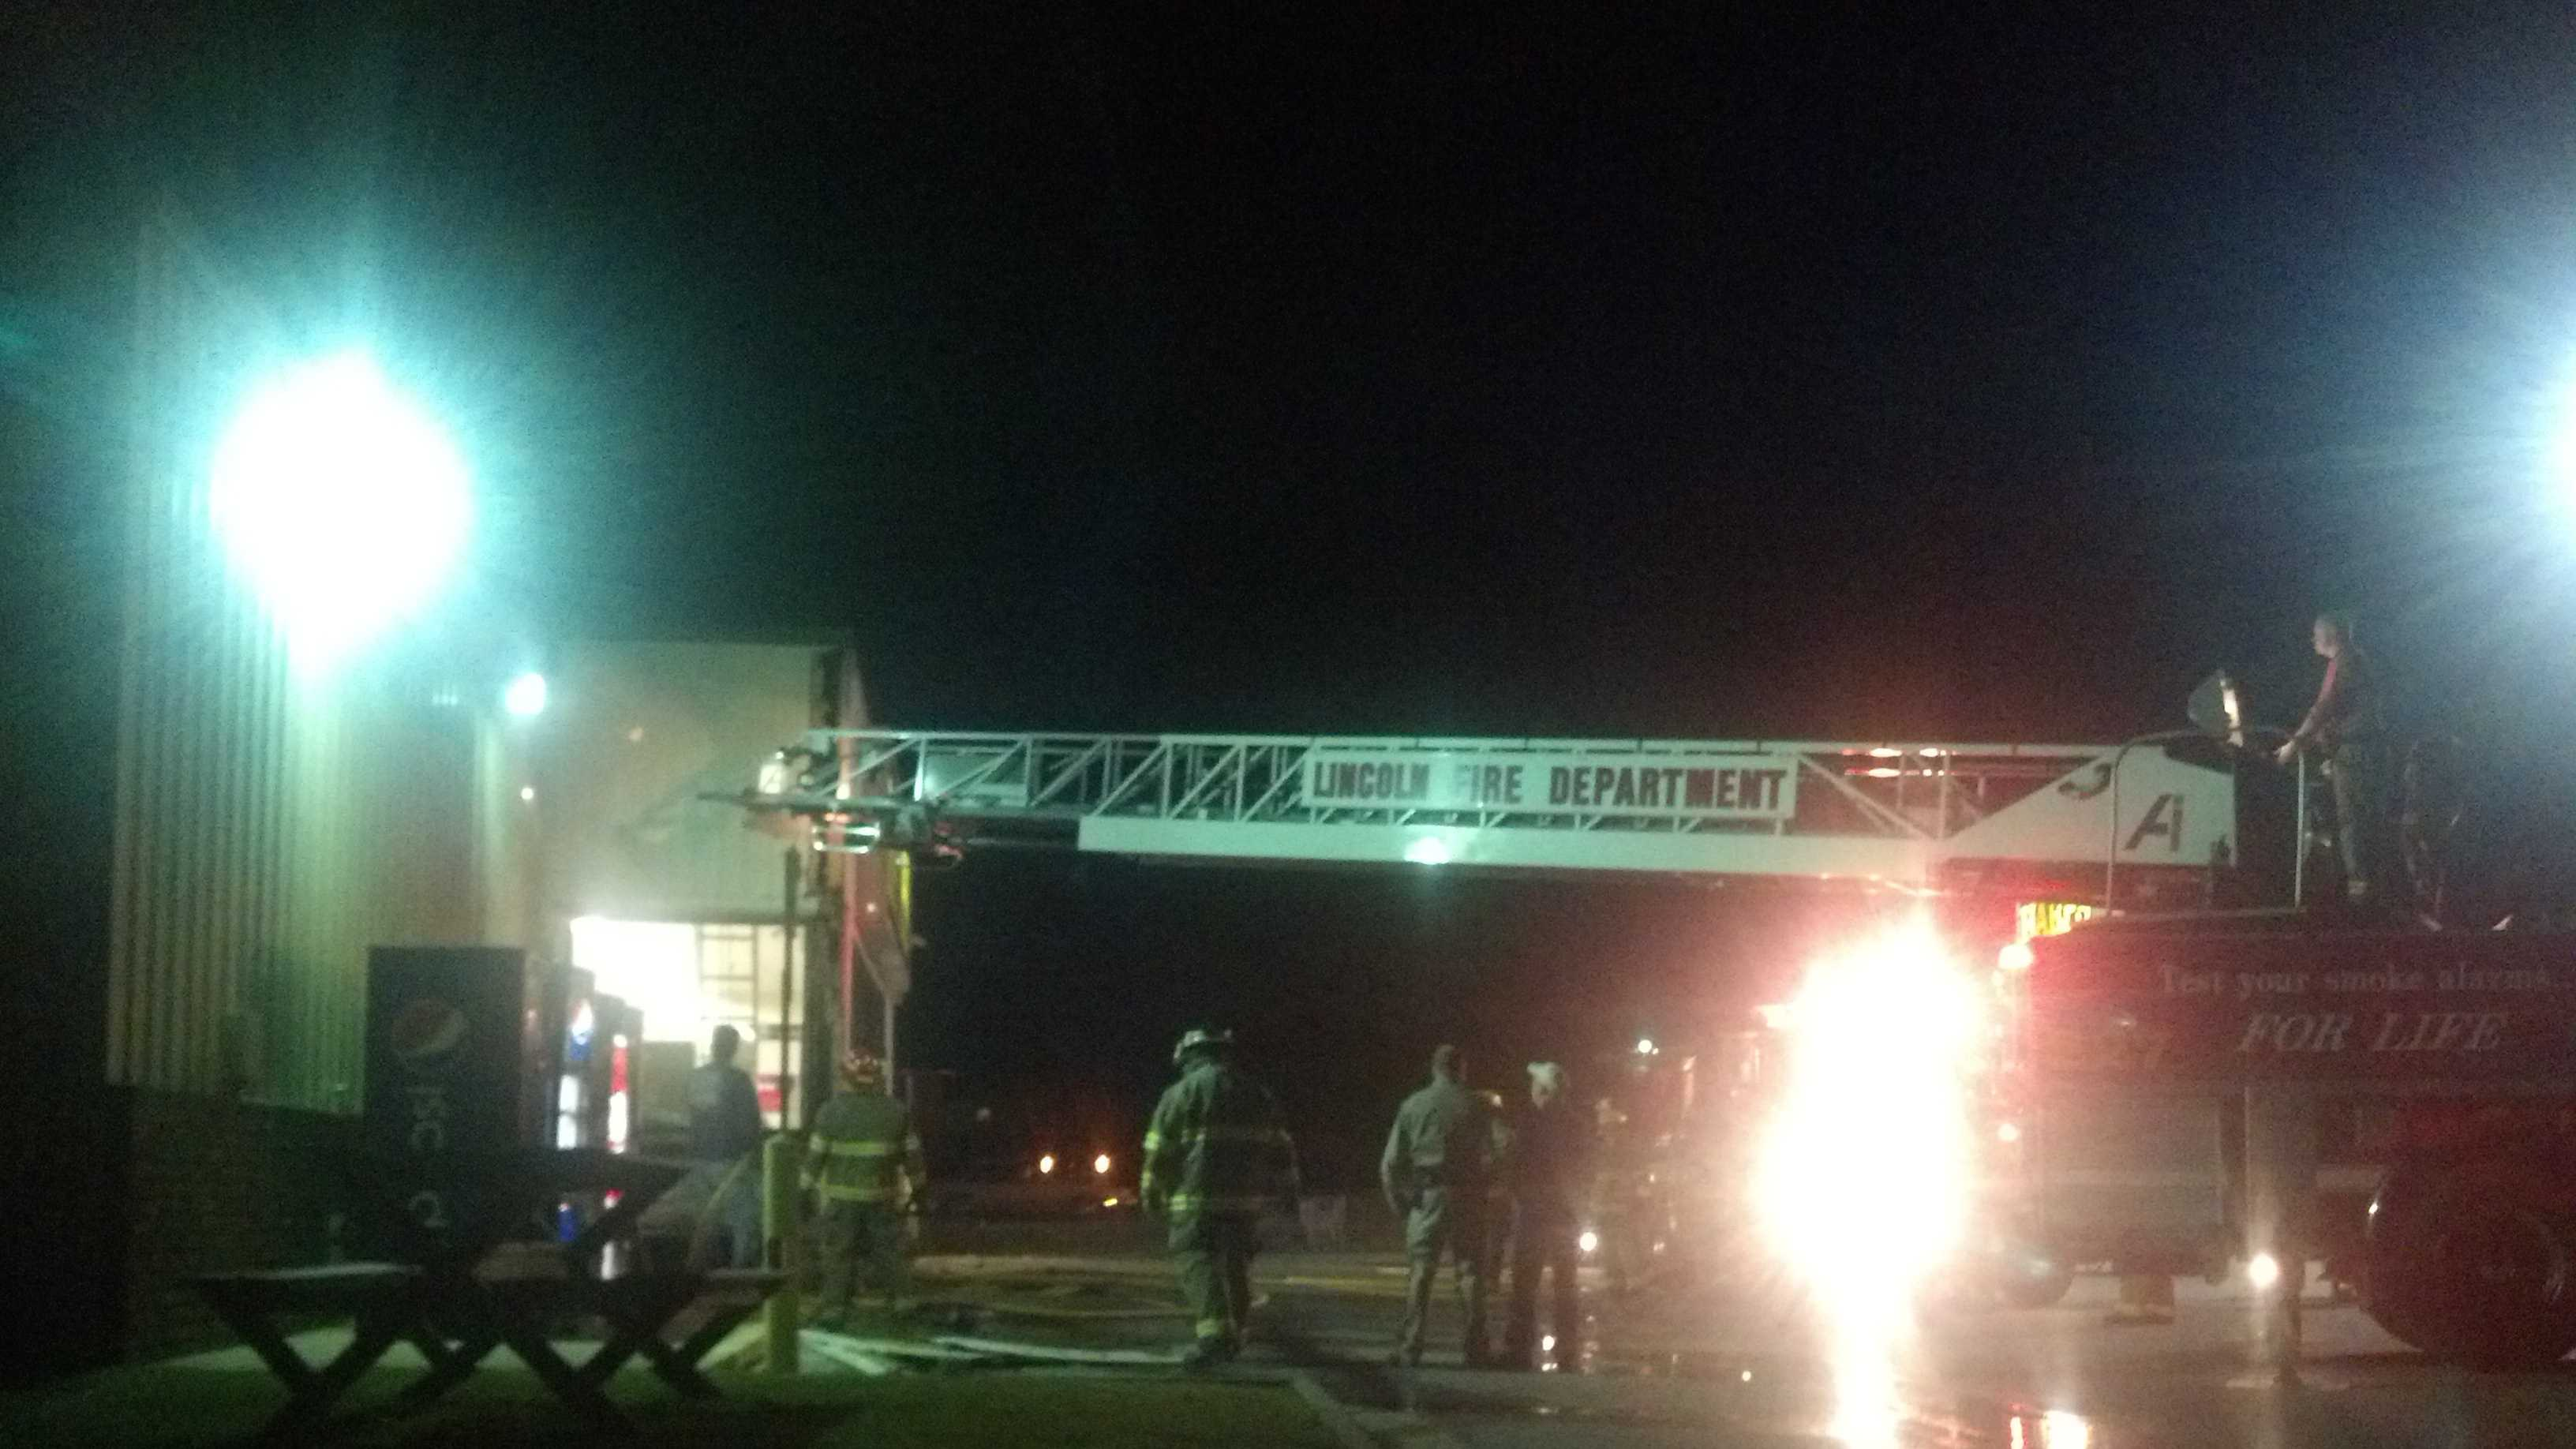 Fire Departments respond to Harp's